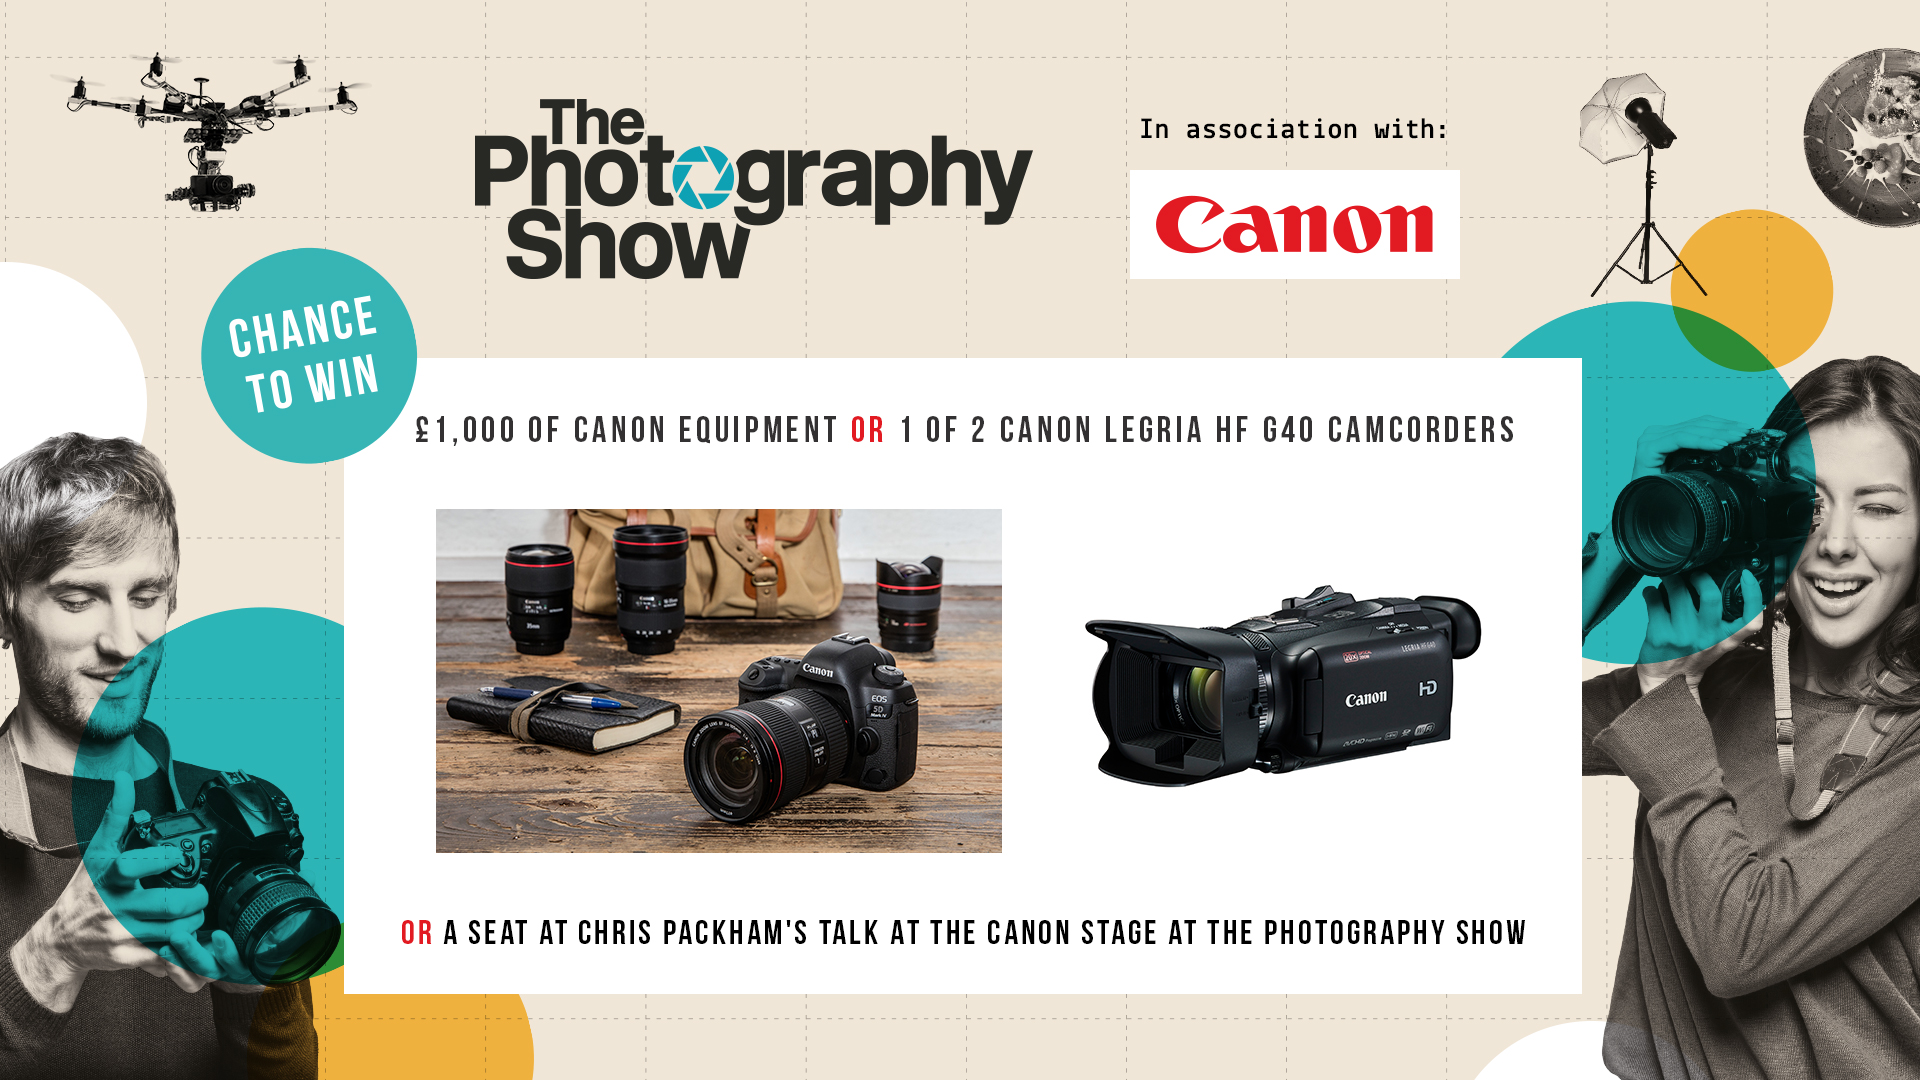 WIN! Enter the Canon prize draw and be in with a chance to win one of these fantastic prizes...